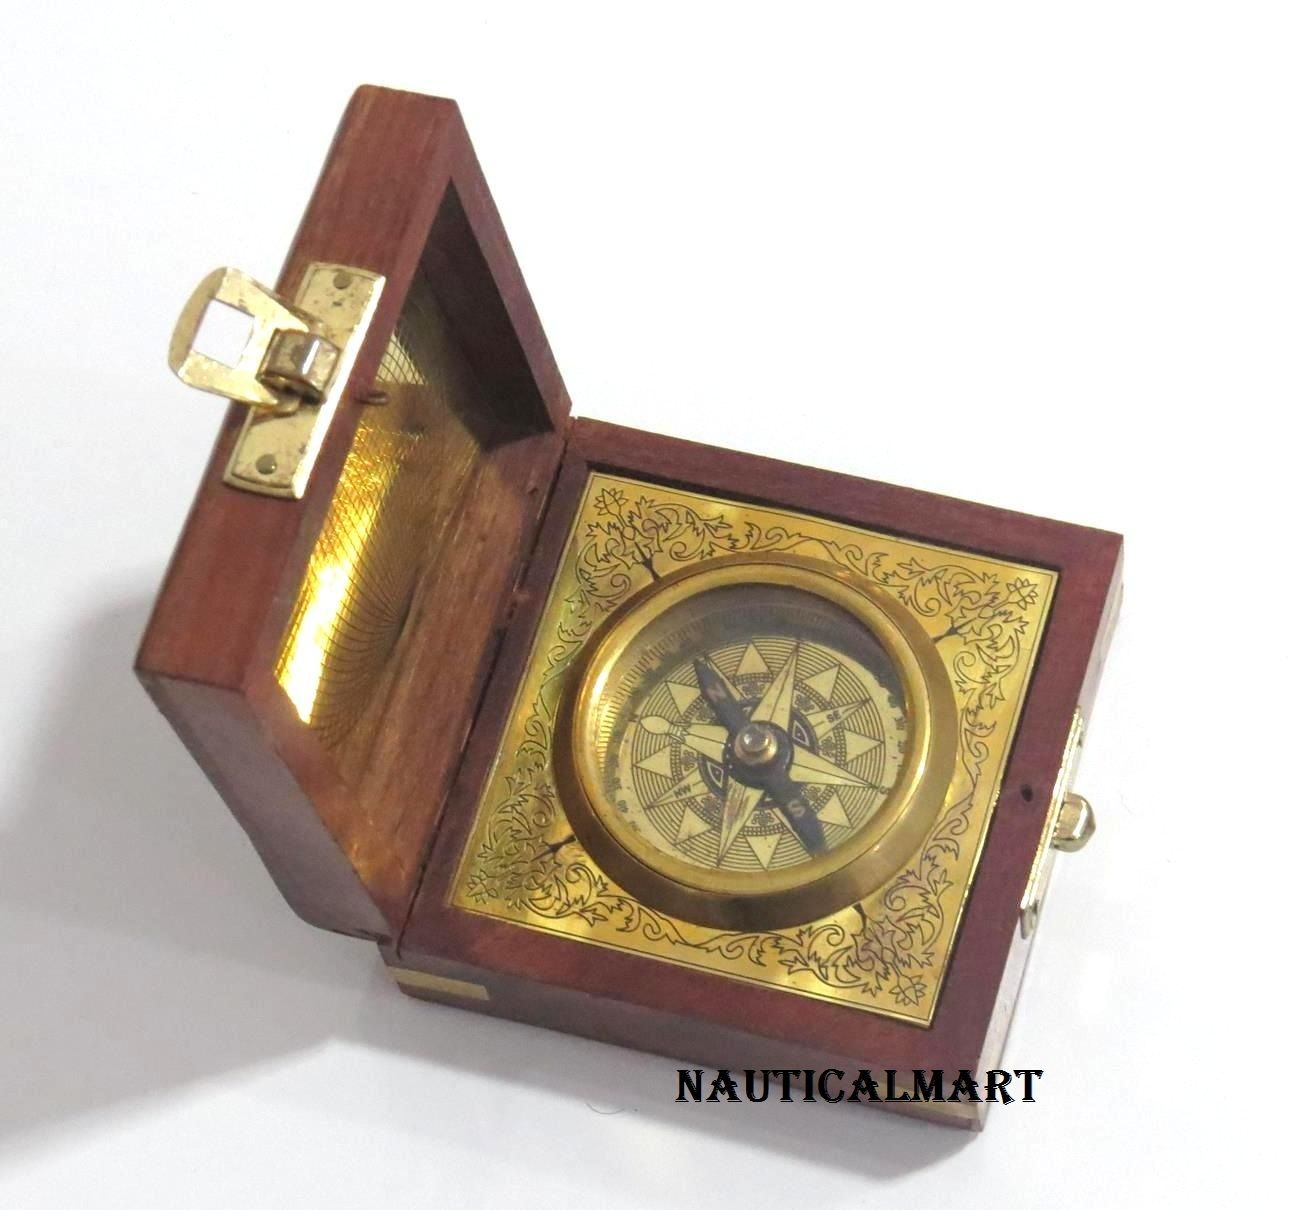 Maritime Bras Handcraft Compass Functional Magnetic Sundial Tool With Box Wooden